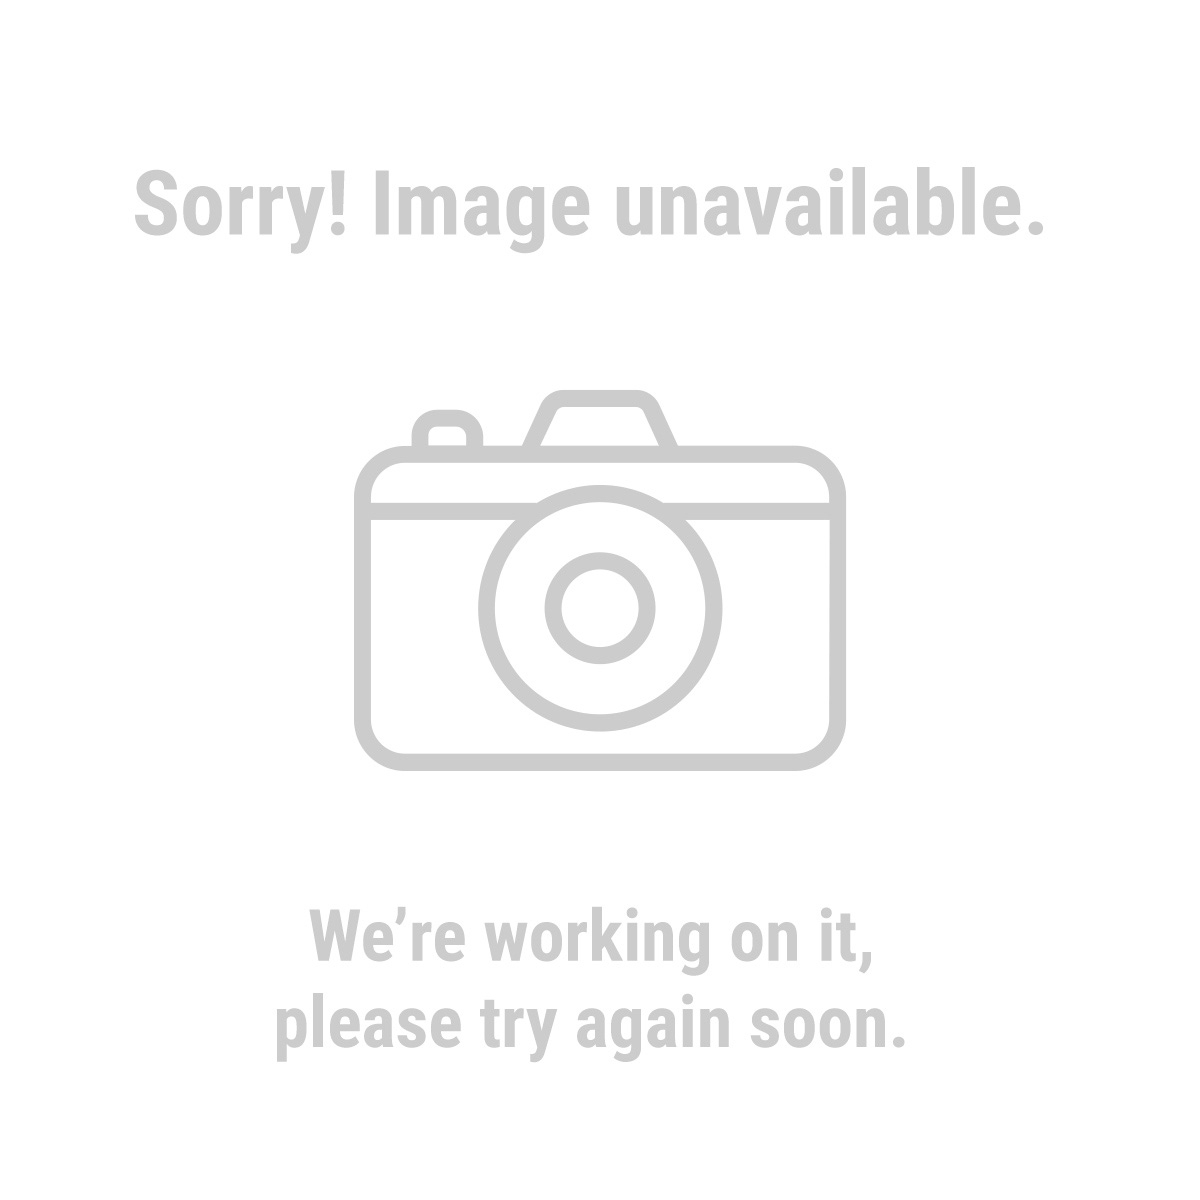 Admiral® 62723 12 in. 60T Finishing Circular Saw Blade